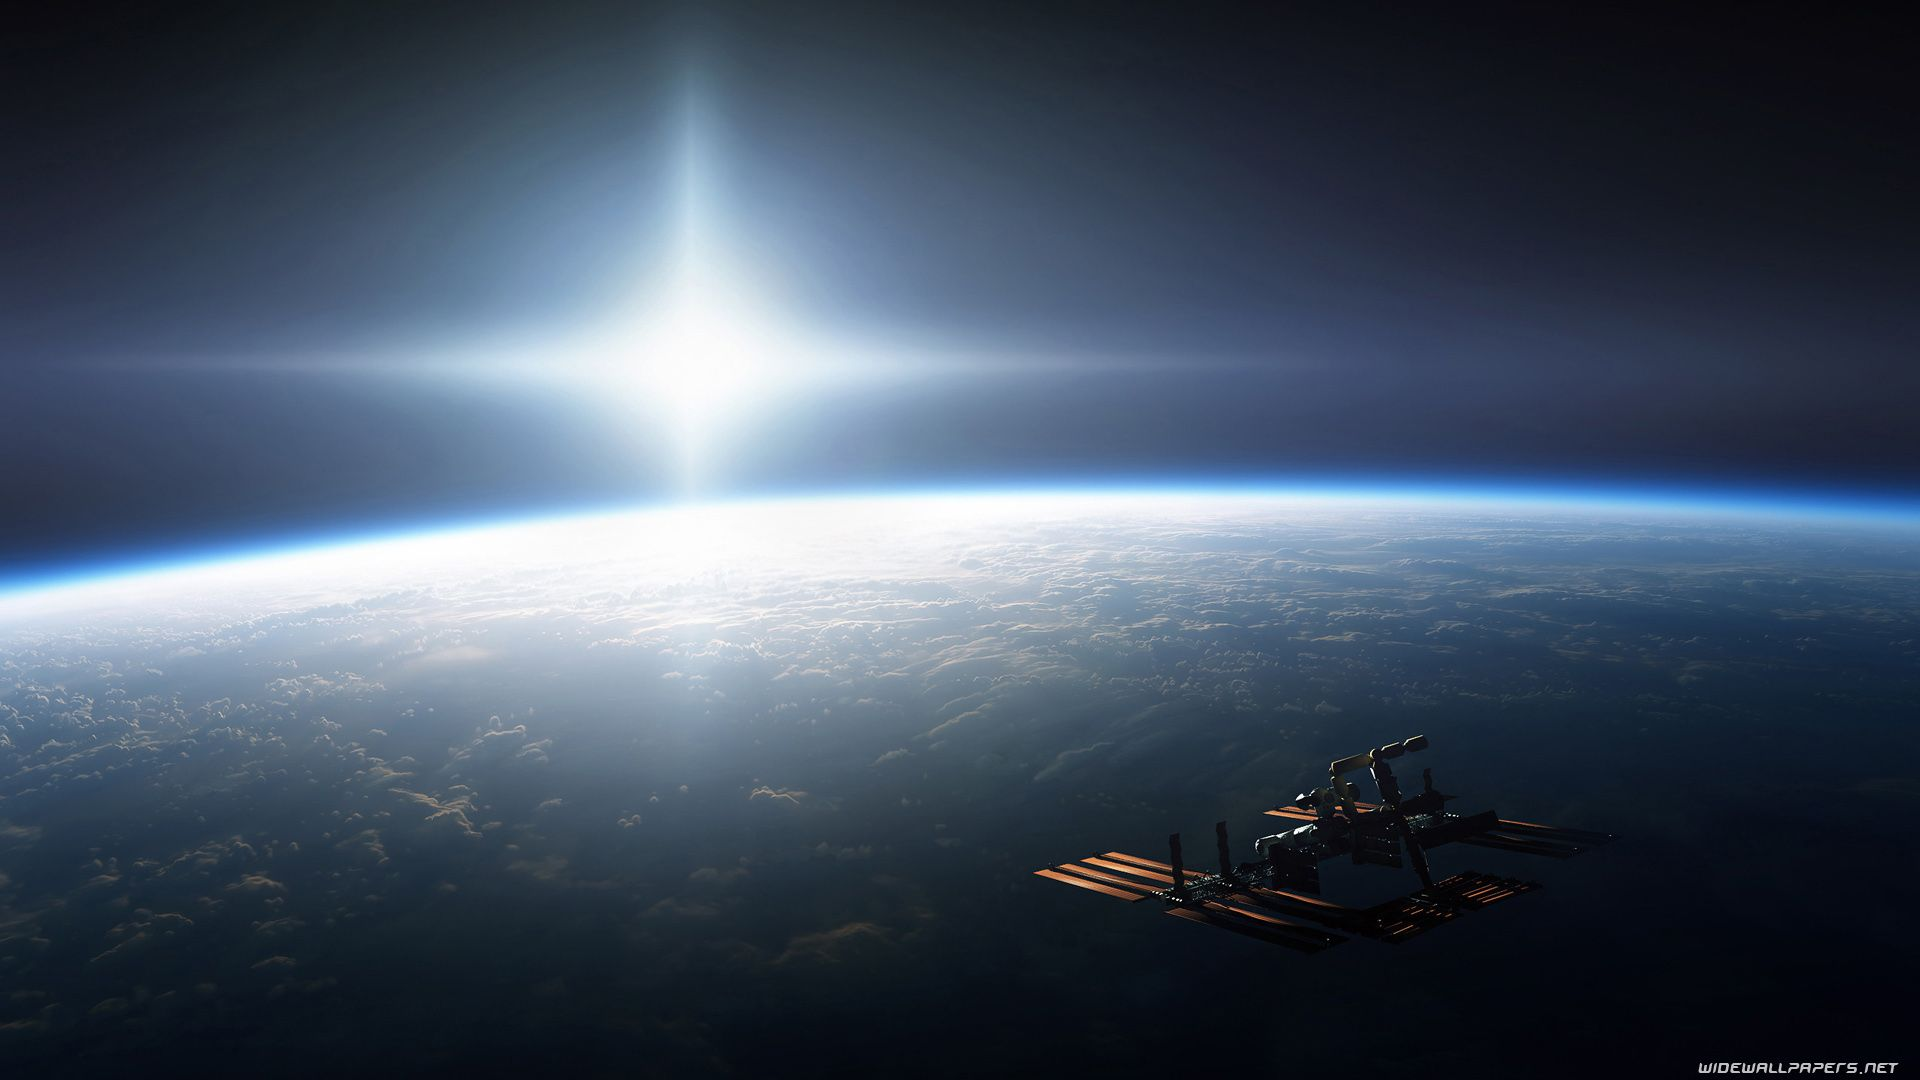 Earth from space wallpaper 1920x1080 hd background - Nasa space wallpaper hd ...